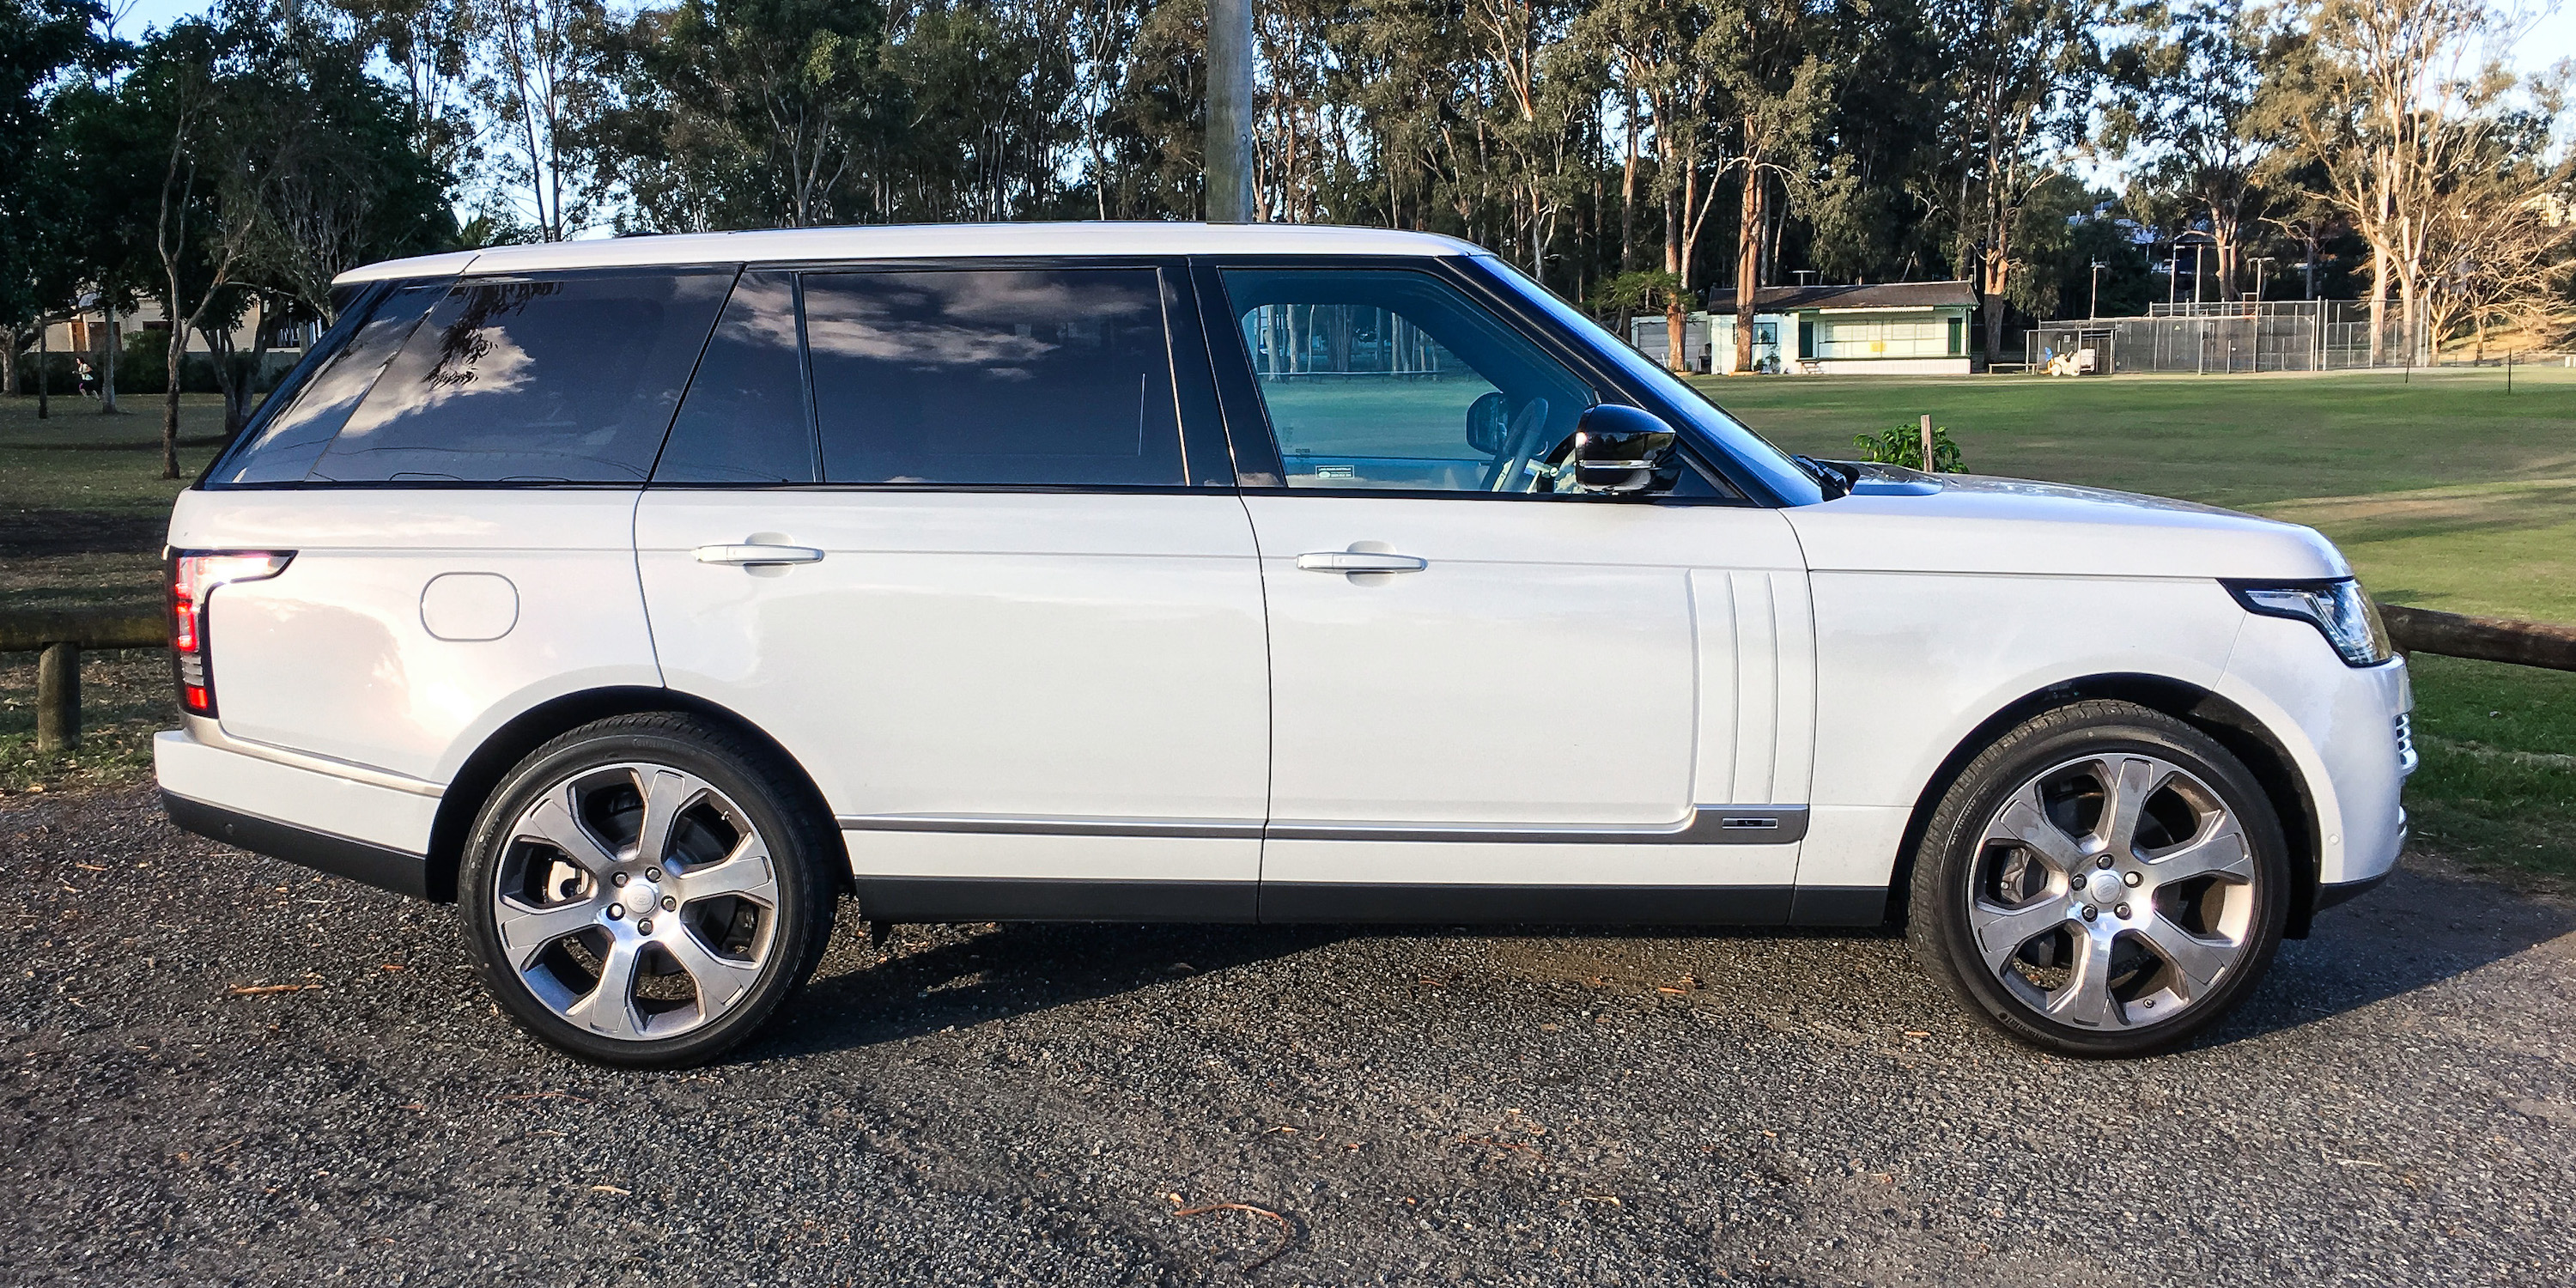 Range Rover Autobiography 2016 >> 2016 Range Rover Autobiography Lwb Review Caradvice